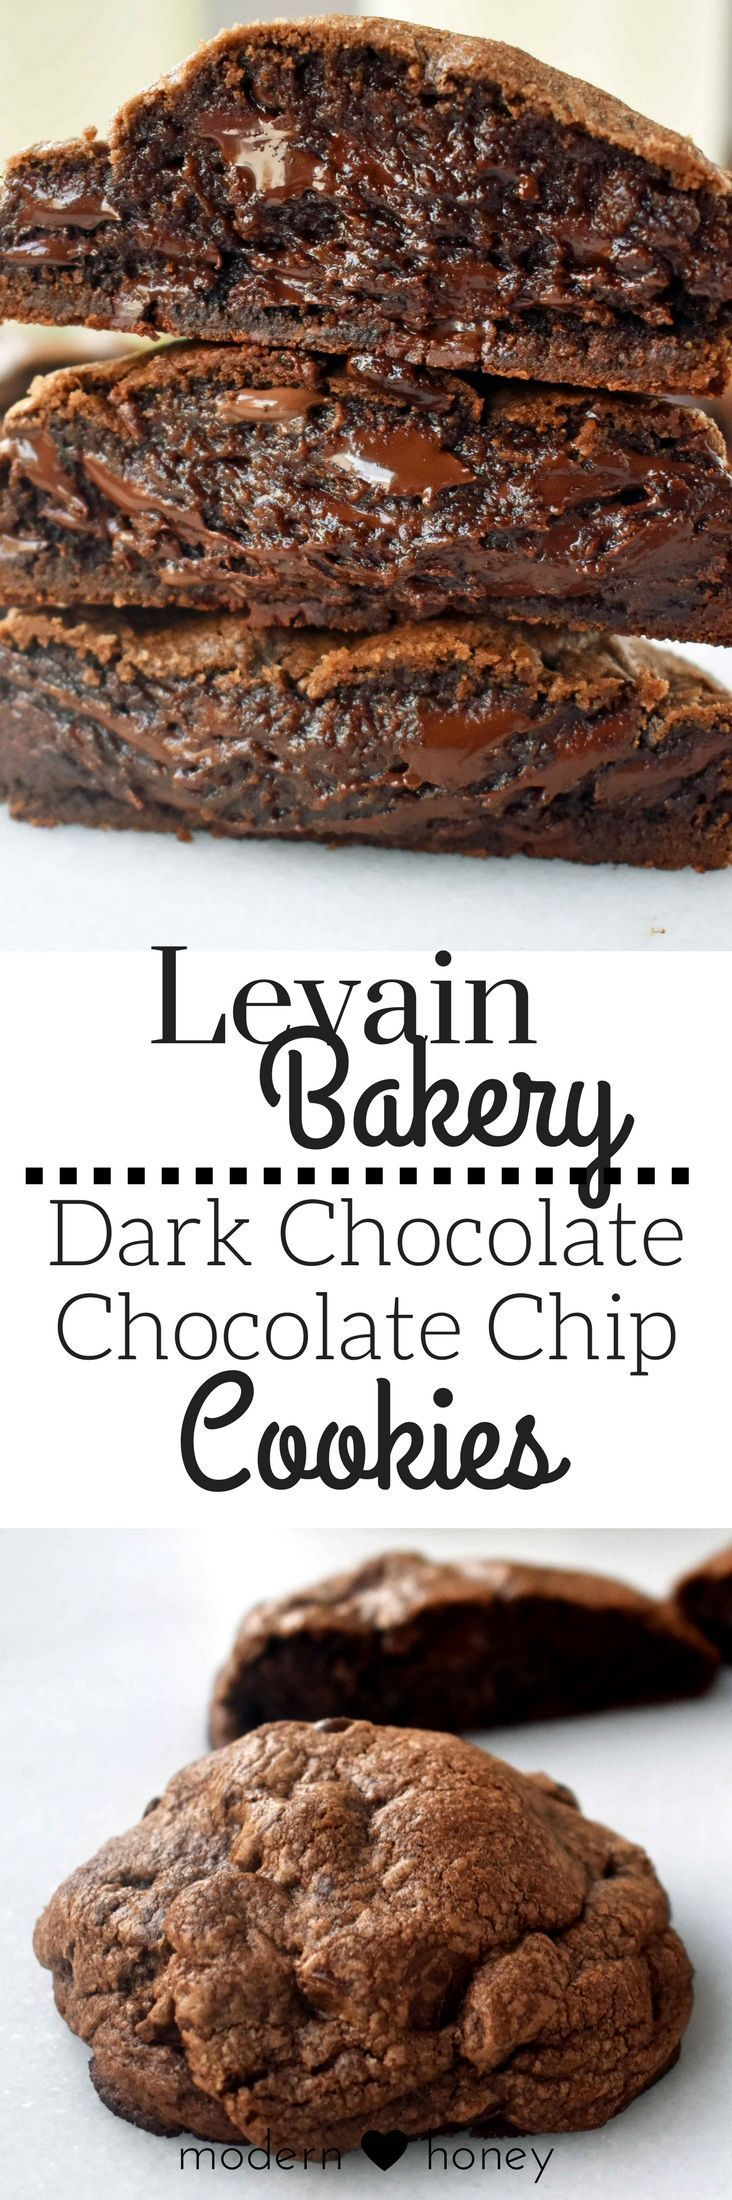 Levain Bakery Dark Chocolate Chocolate Chip Cookies are the ultimate copycat Levain Bakery cookie recipe. 5 Star Rating for a reason. http://www.modernhoney.com